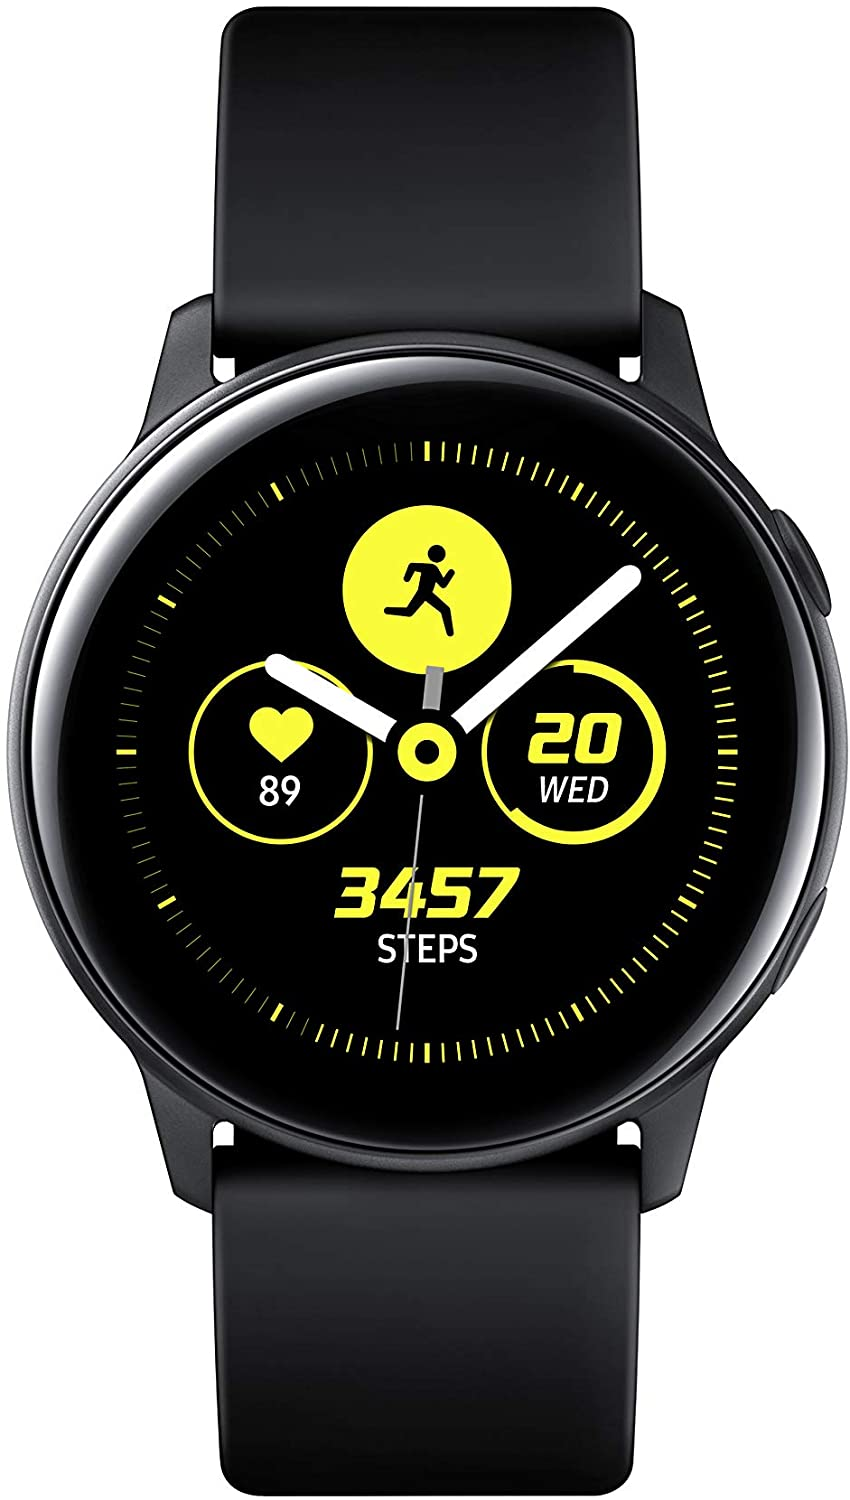 Samsung Galaxy Watch Active (40mm, GPS, Bluetooth, Wifi), Black - US Version with Warranty